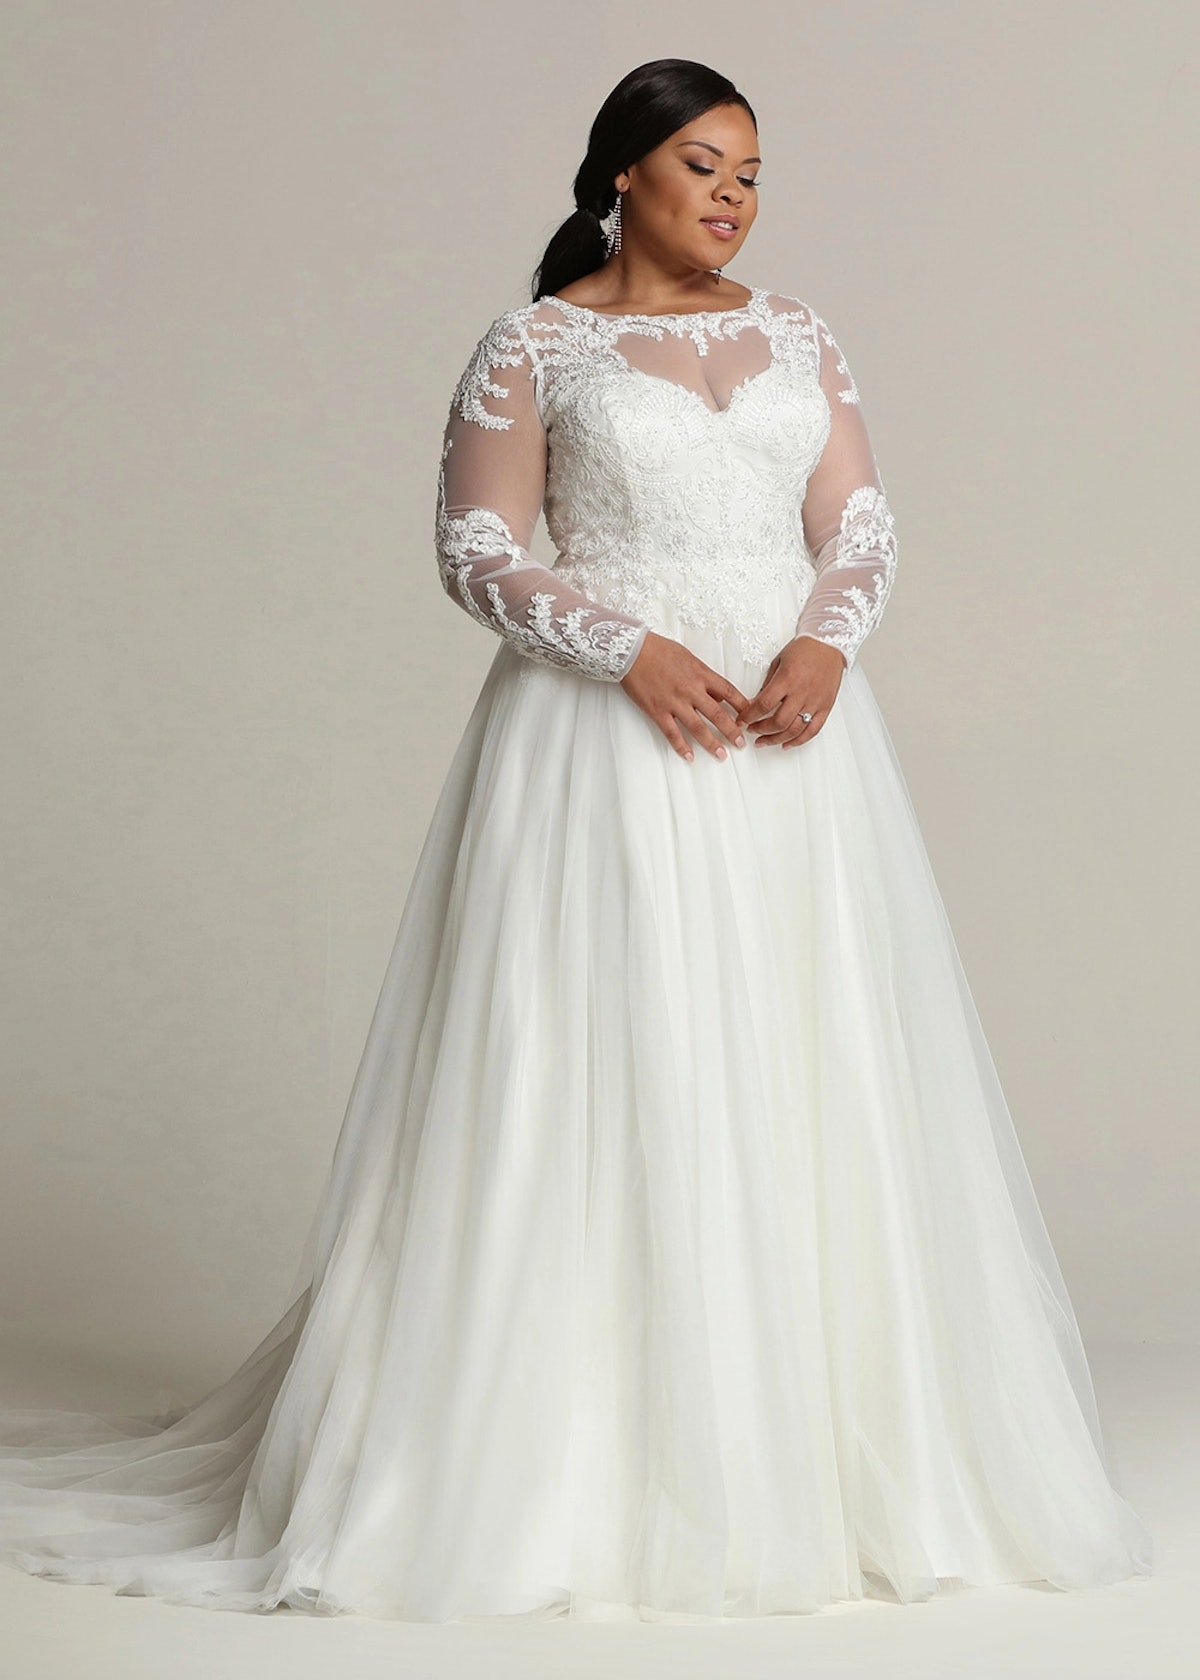 Avery Austin Long Sleeve Lace and Tulle Ball Gown Wedding Dress Victoria